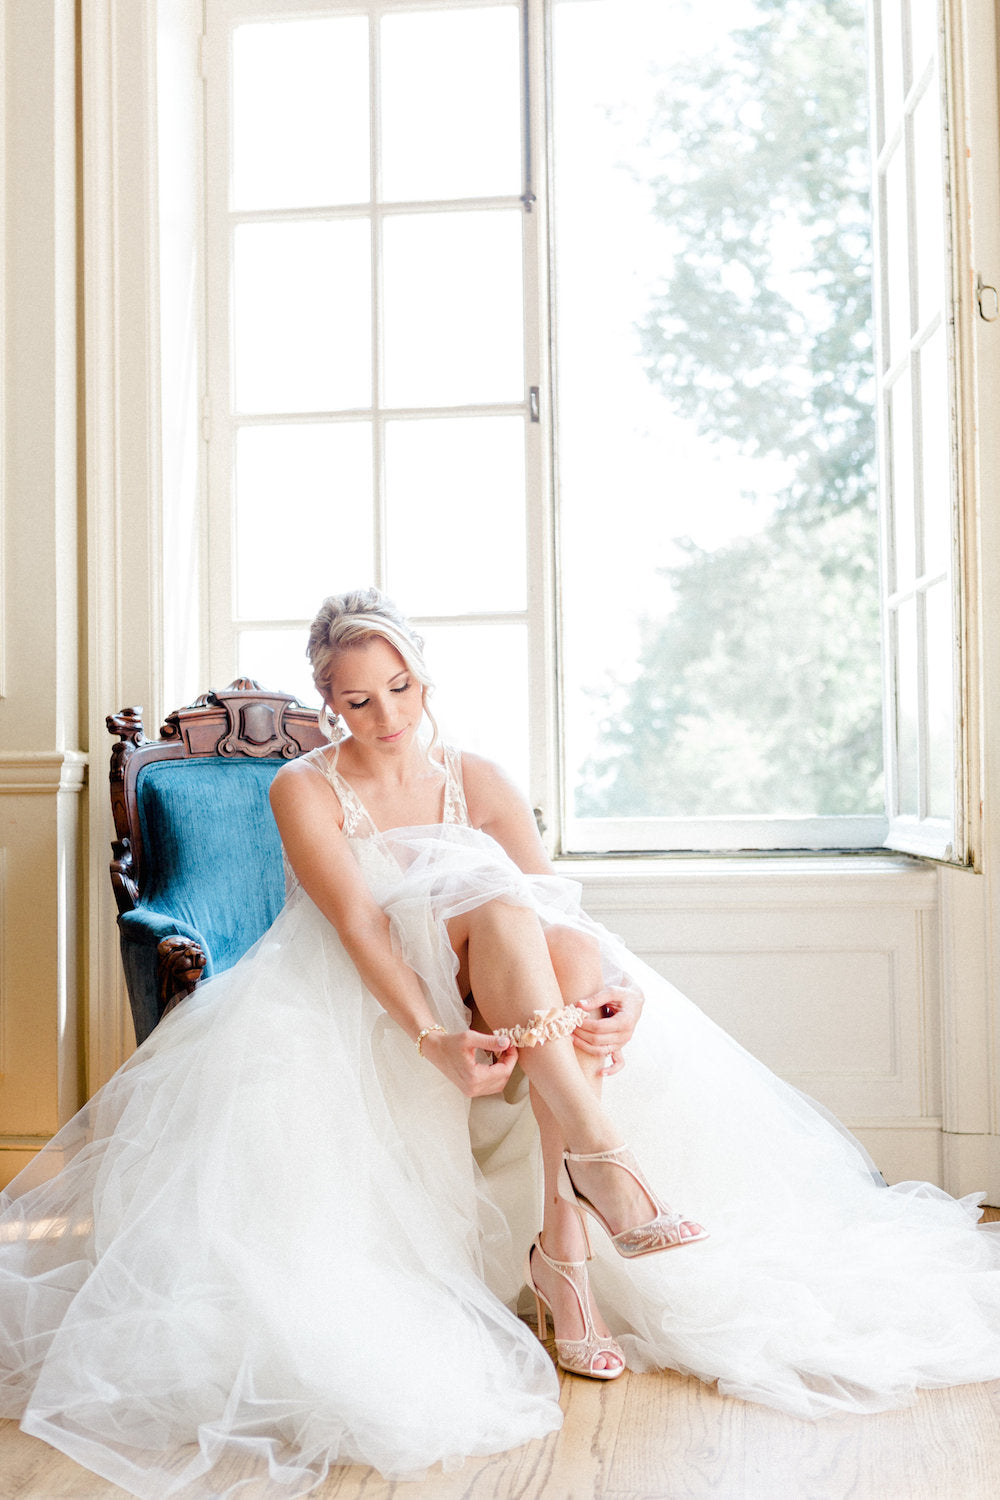 bride putting on garter - tips about trying wedding dresses on at home from The Garter Girl